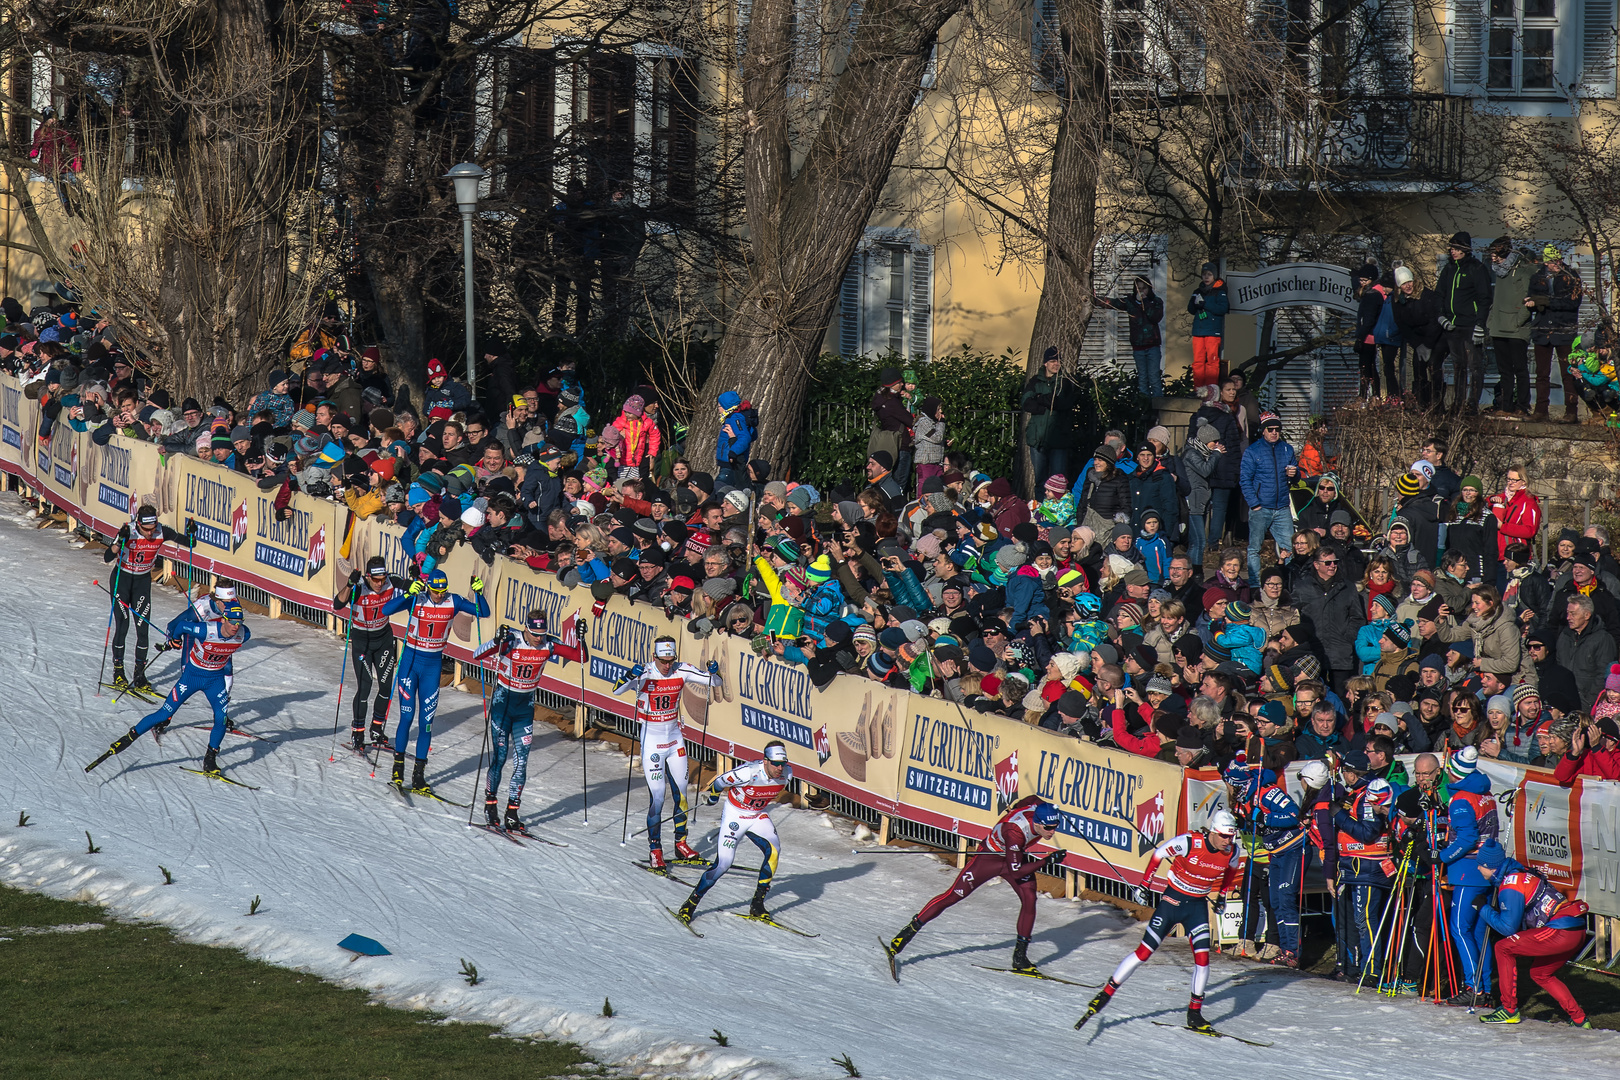 FIS Skiweltcup Dresden